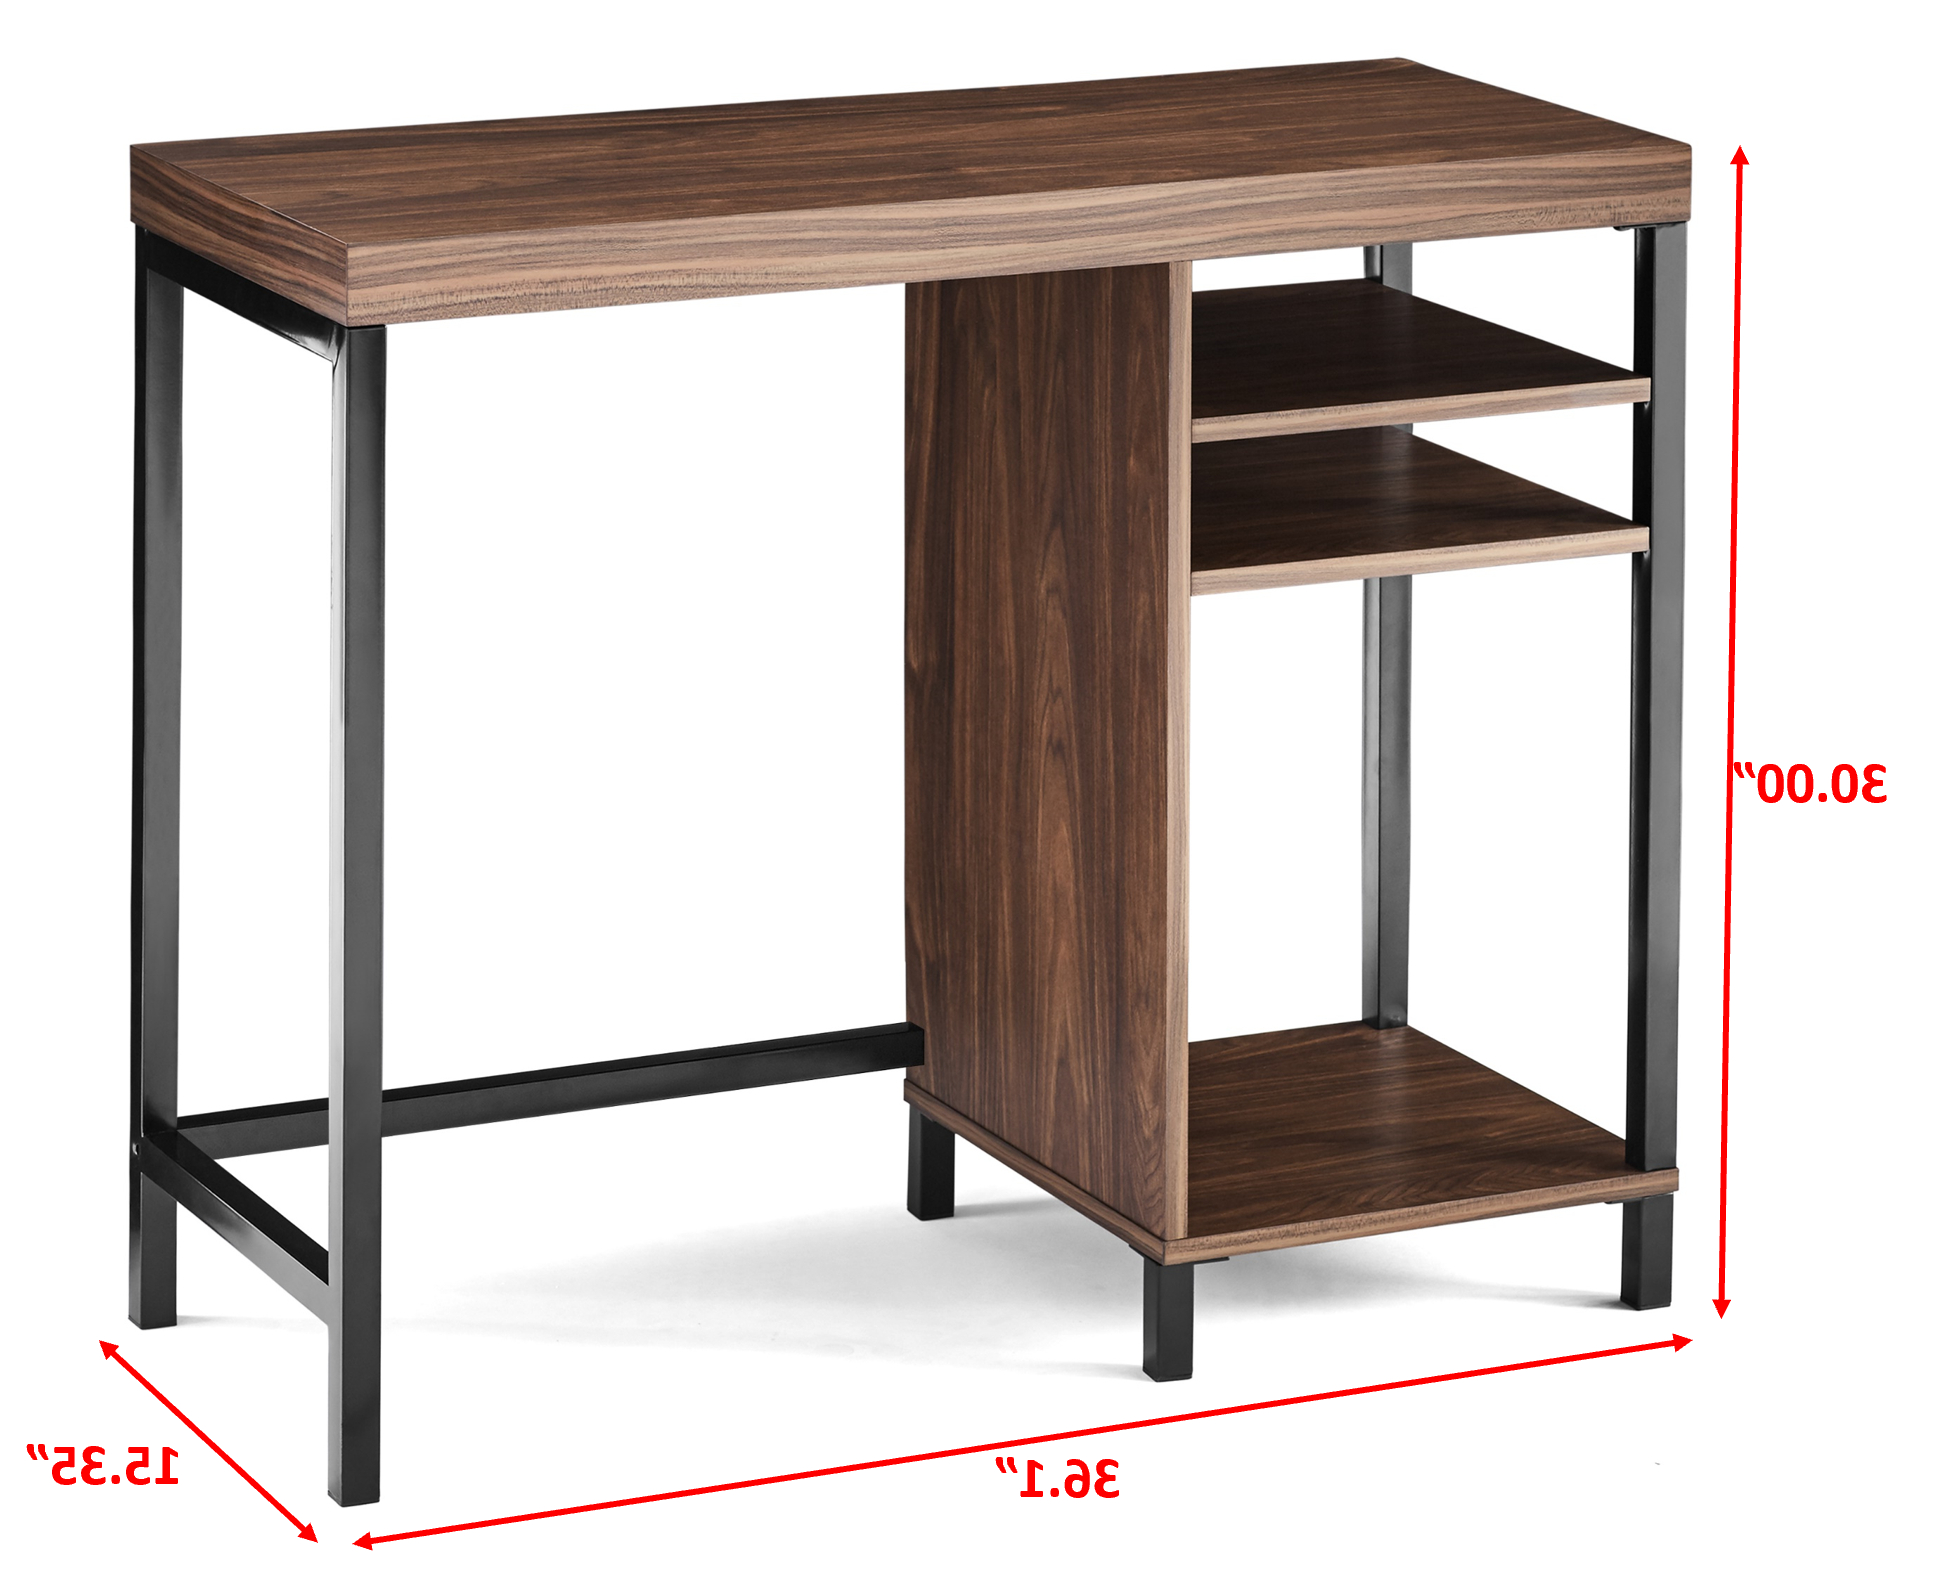 Variety Liquidation Llc In Preferred Mainstays 4 Cube Tv Stands In Multiple Finishes (View 10 of 10)